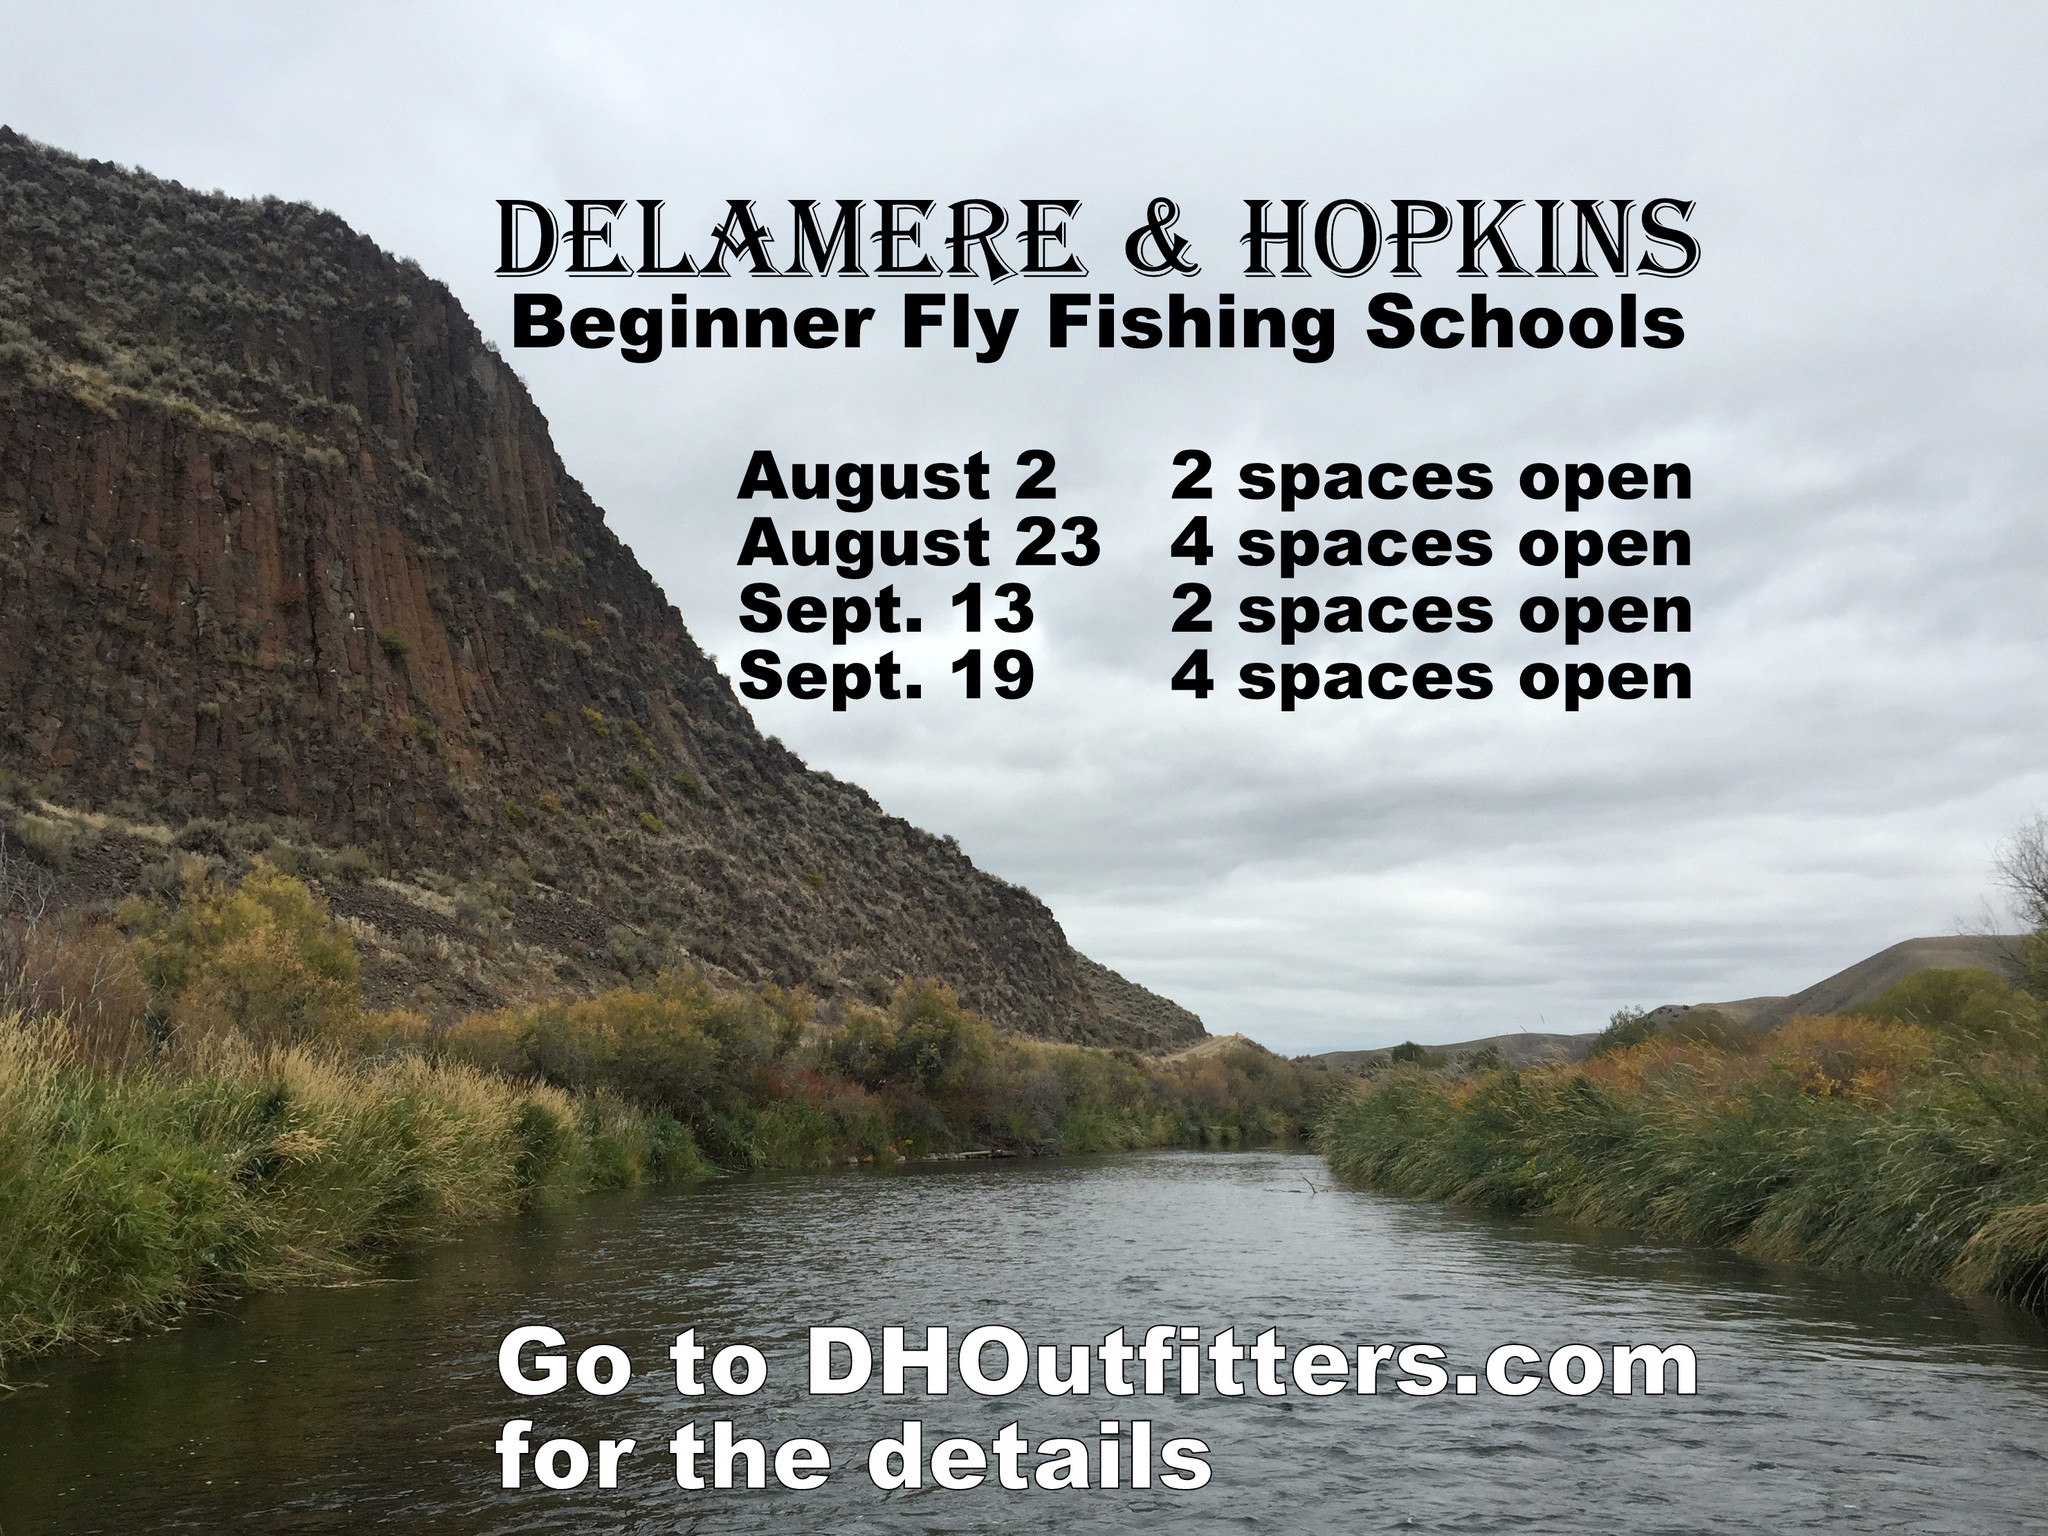 new dates added for Beginner Fly Fishing Schools